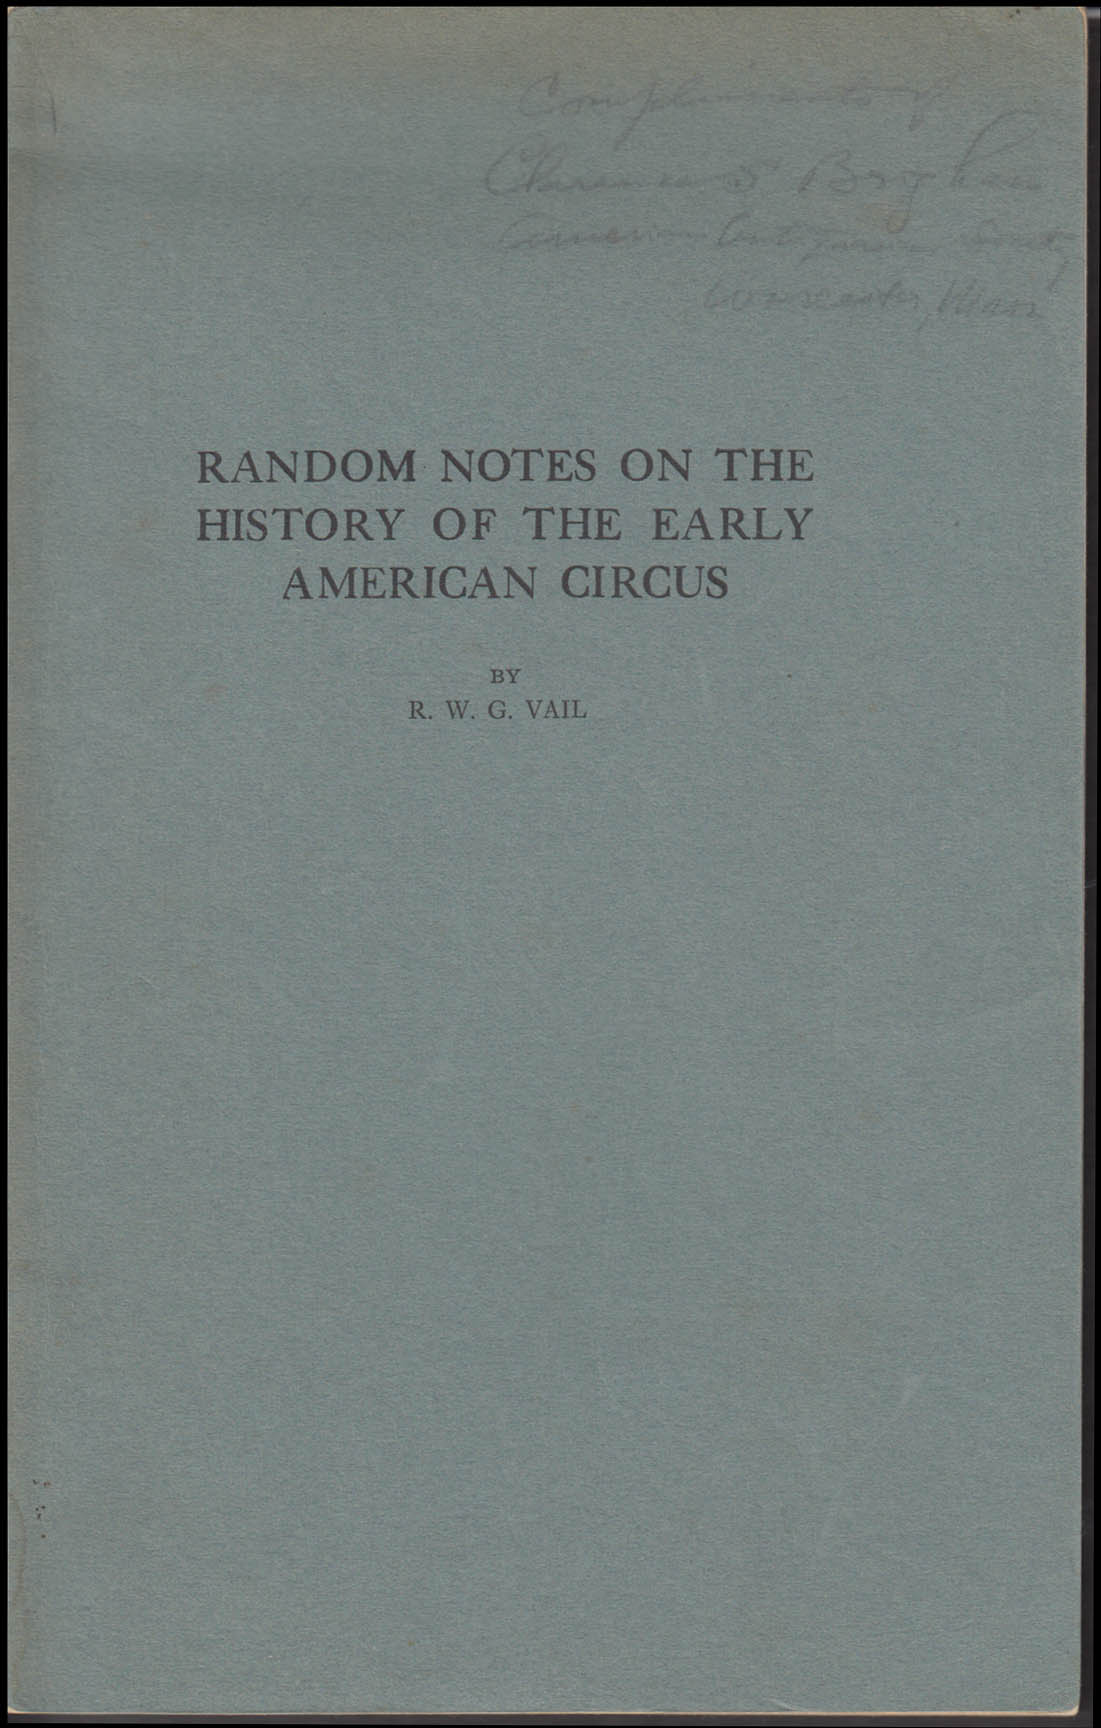 R W G Vail: Random Notes History of the Early American Circus 1934